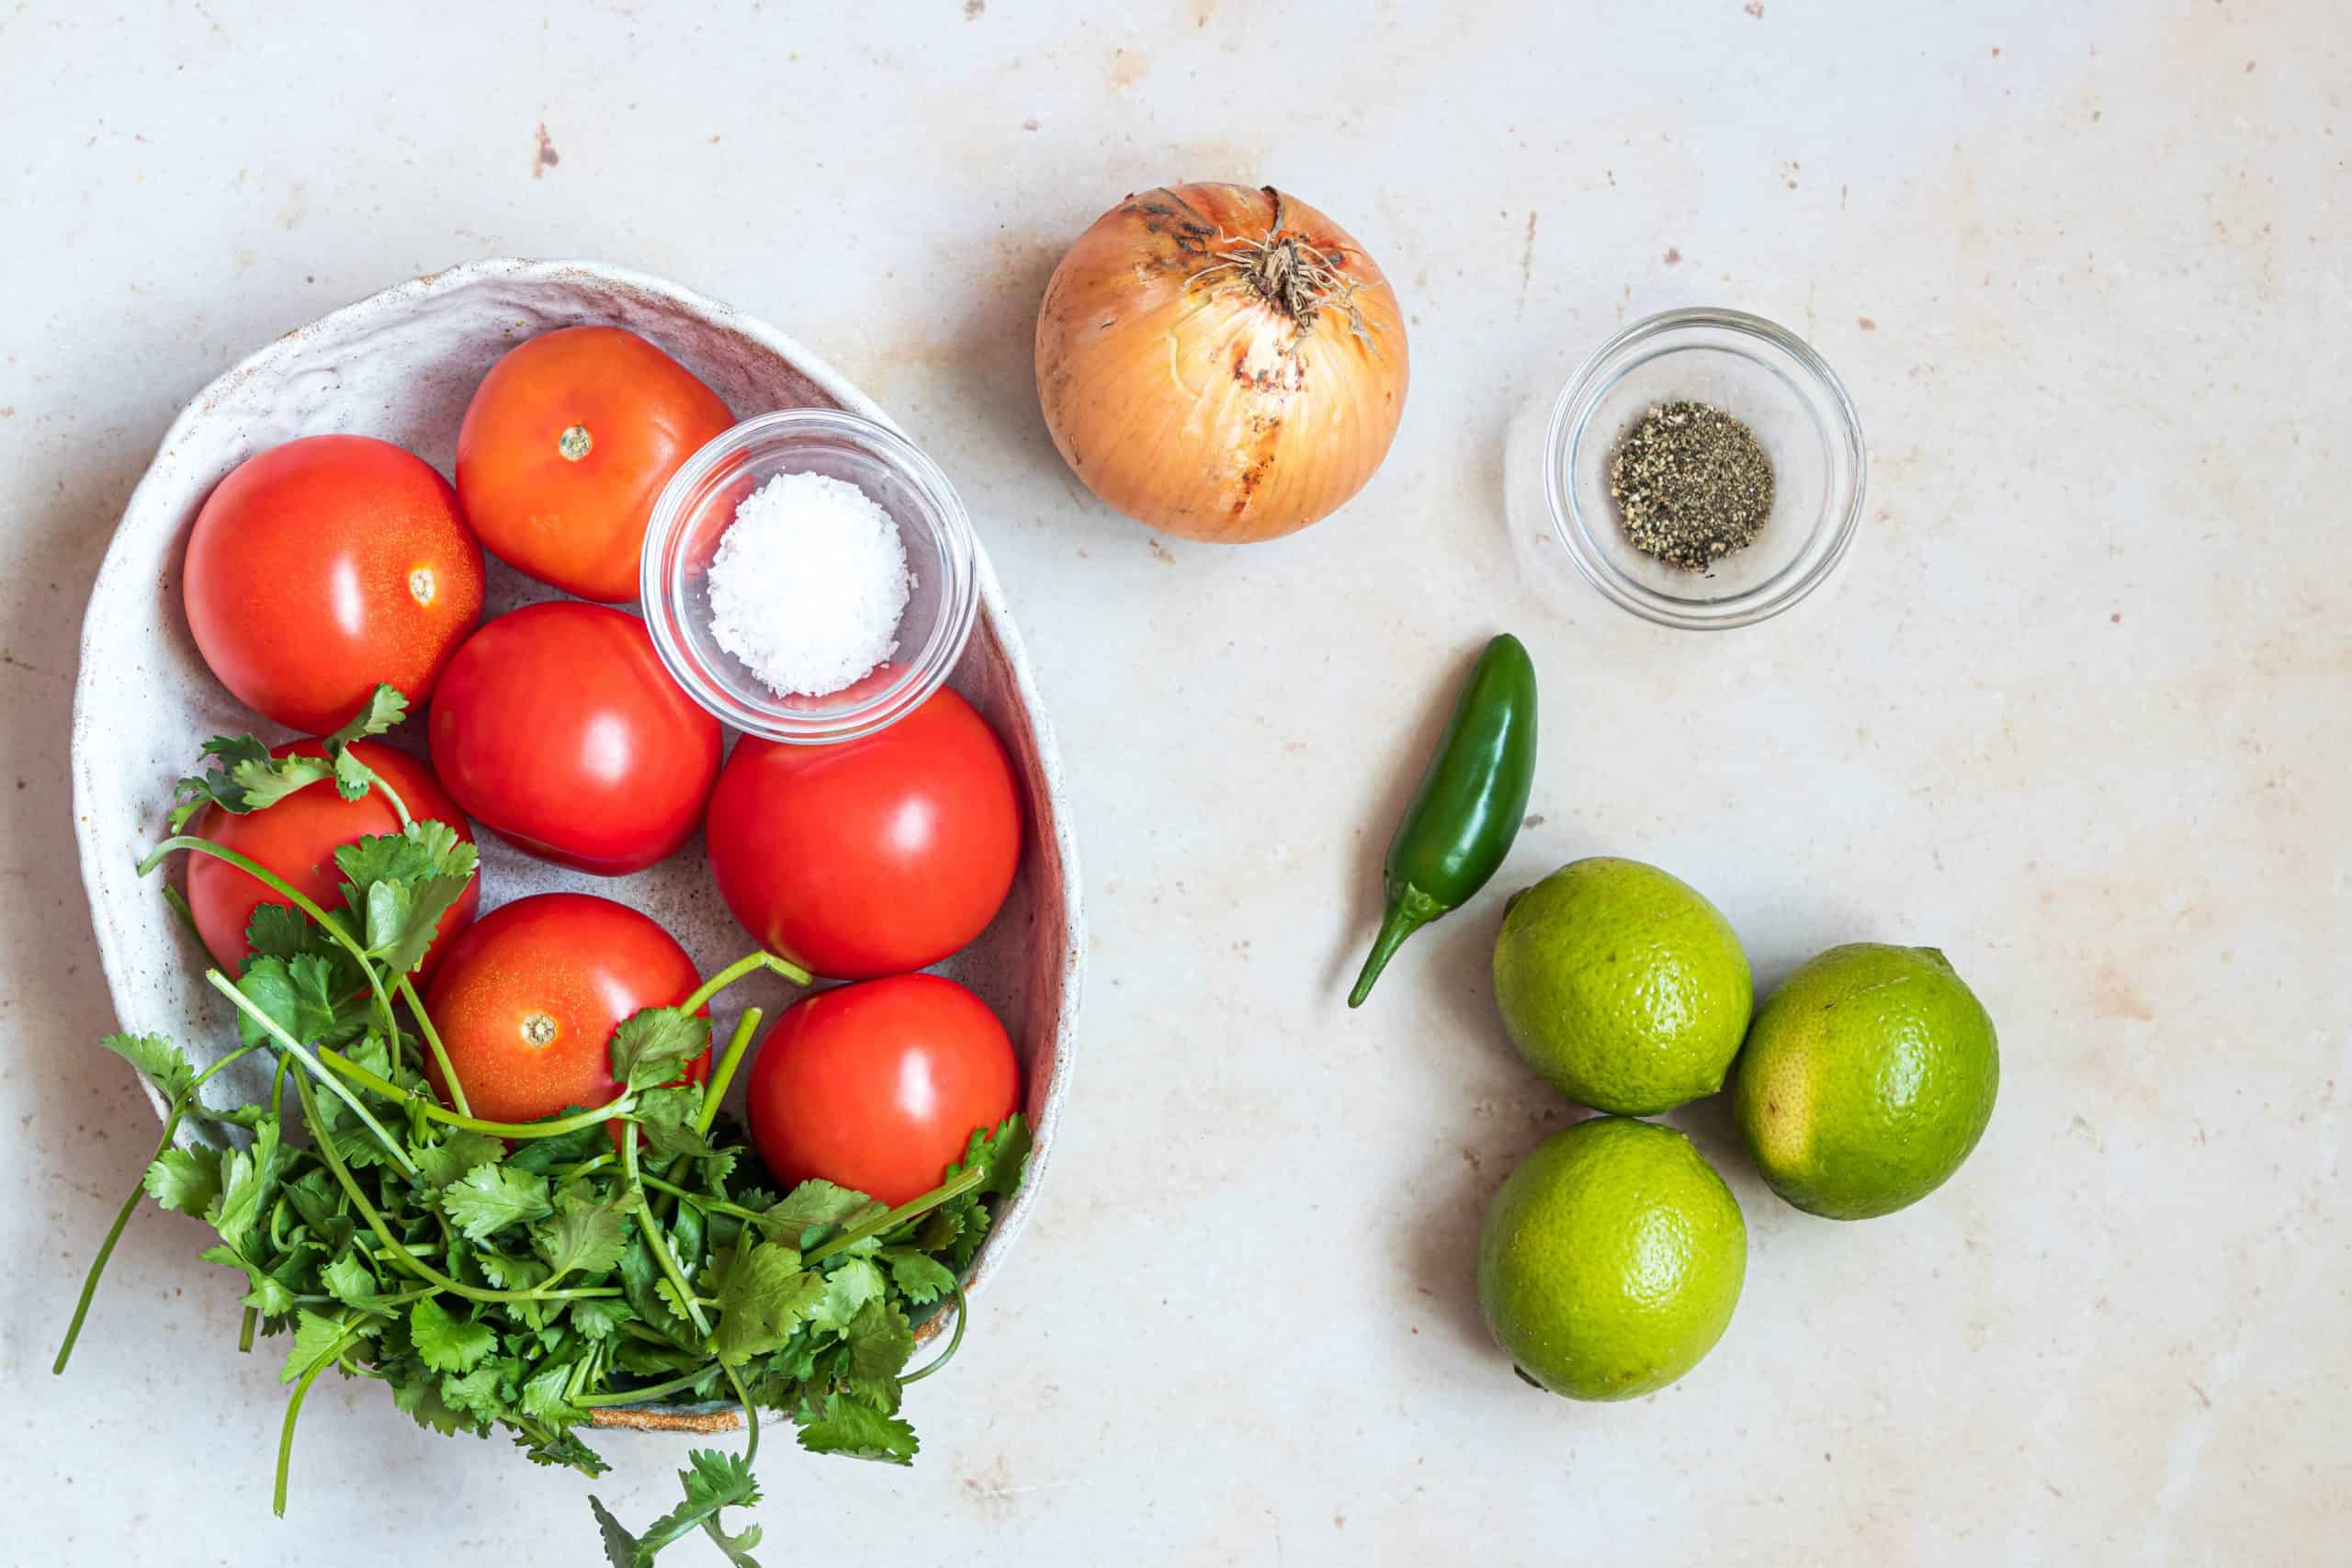 Ingrediens needed: tomatoes, onion, jalapeno, lime juice, salt and pepper